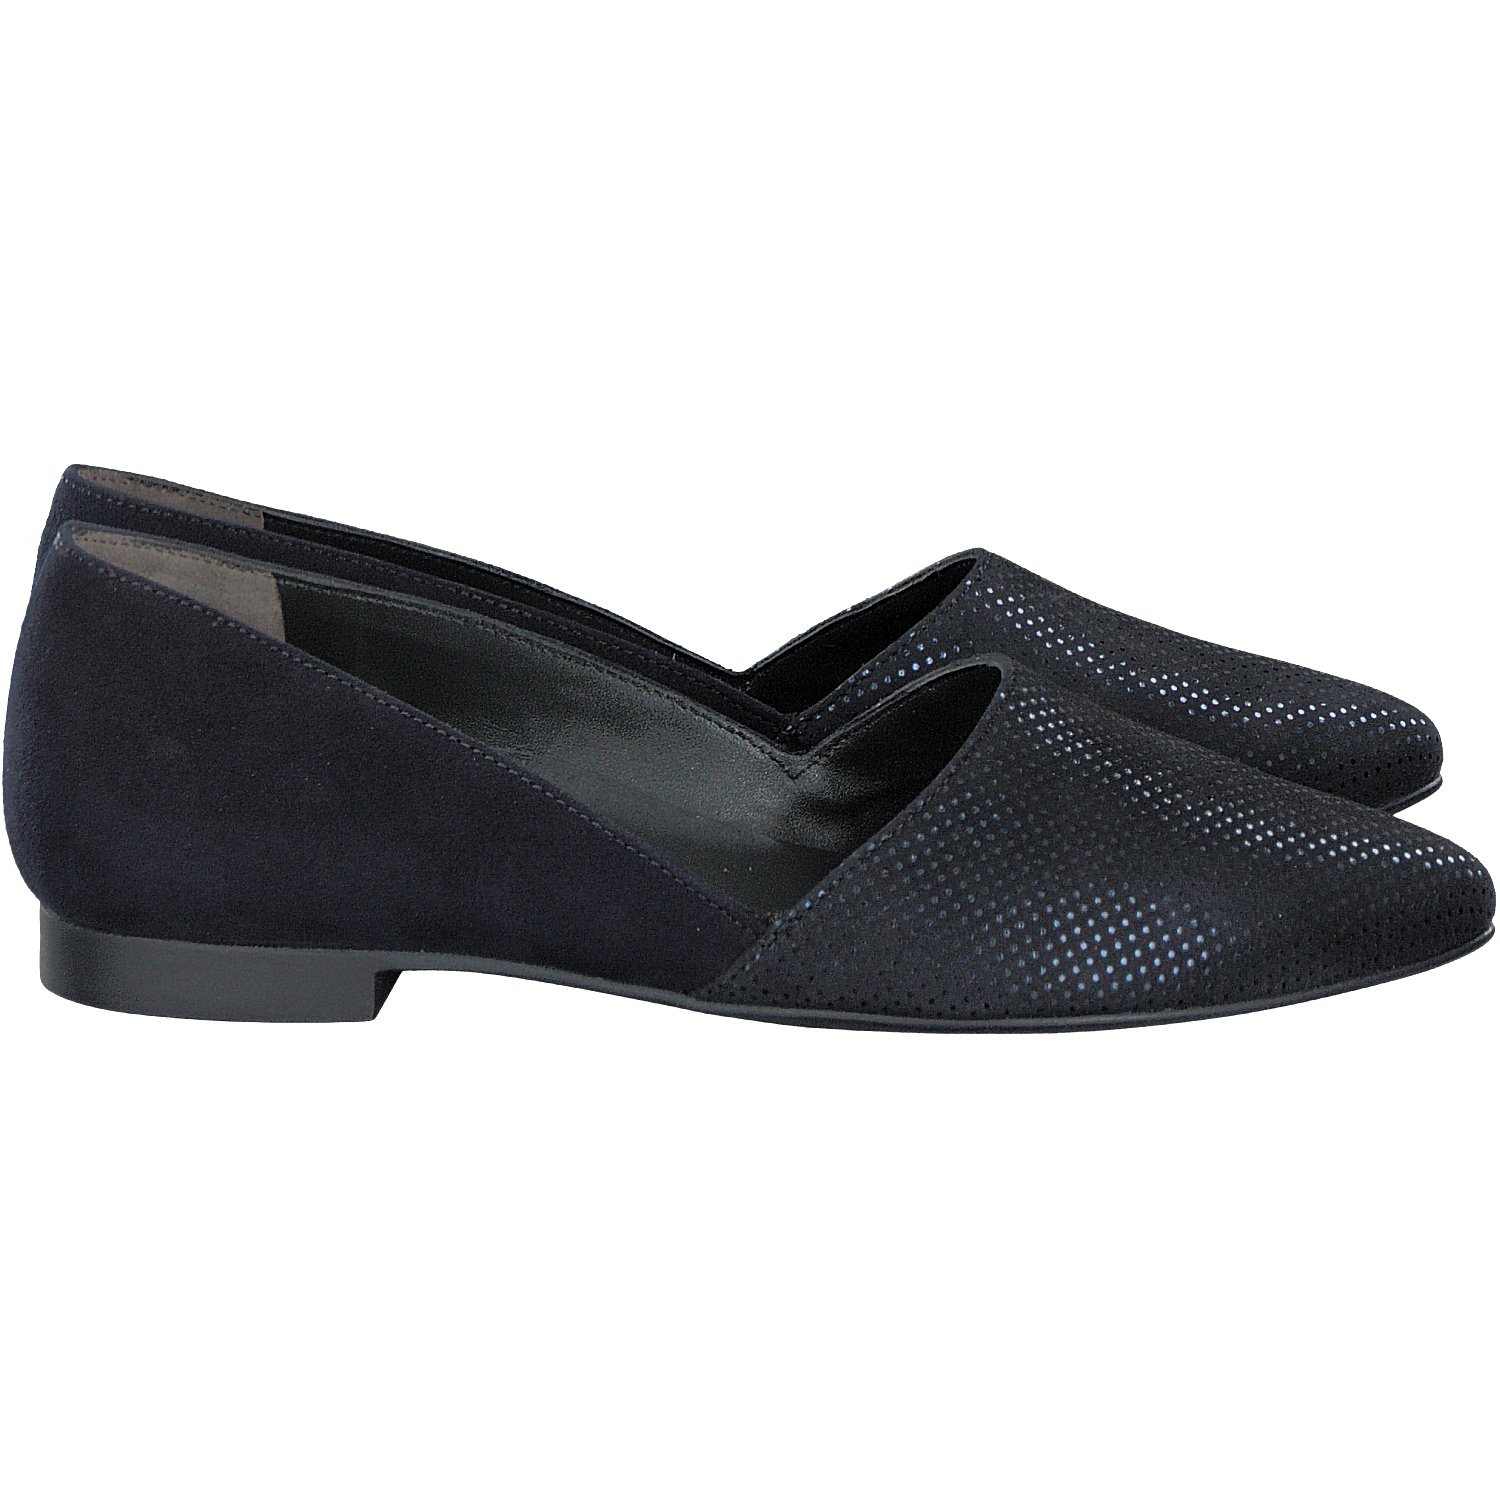 Paul Grün Slipper Damen Slipper Grün 2214-159 Blau 192781 Blau 39d926